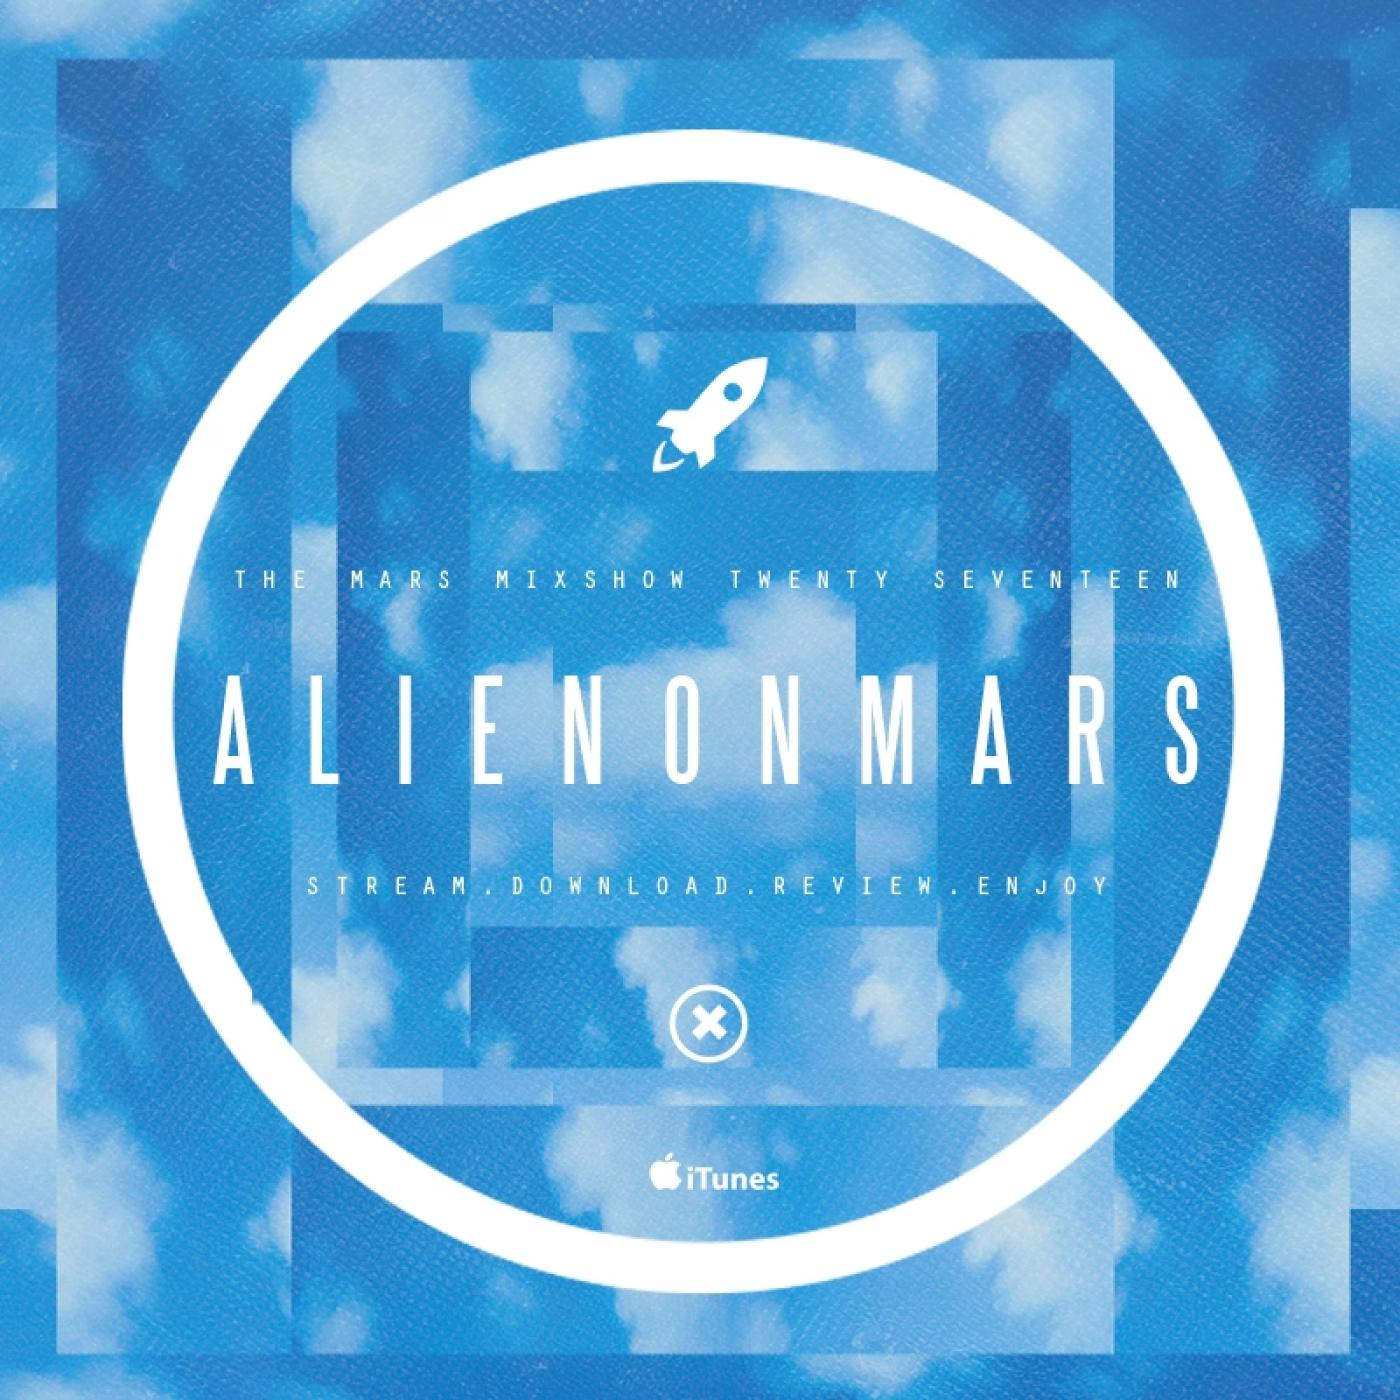 DJ Illegal Alien - The Mars Mixshow